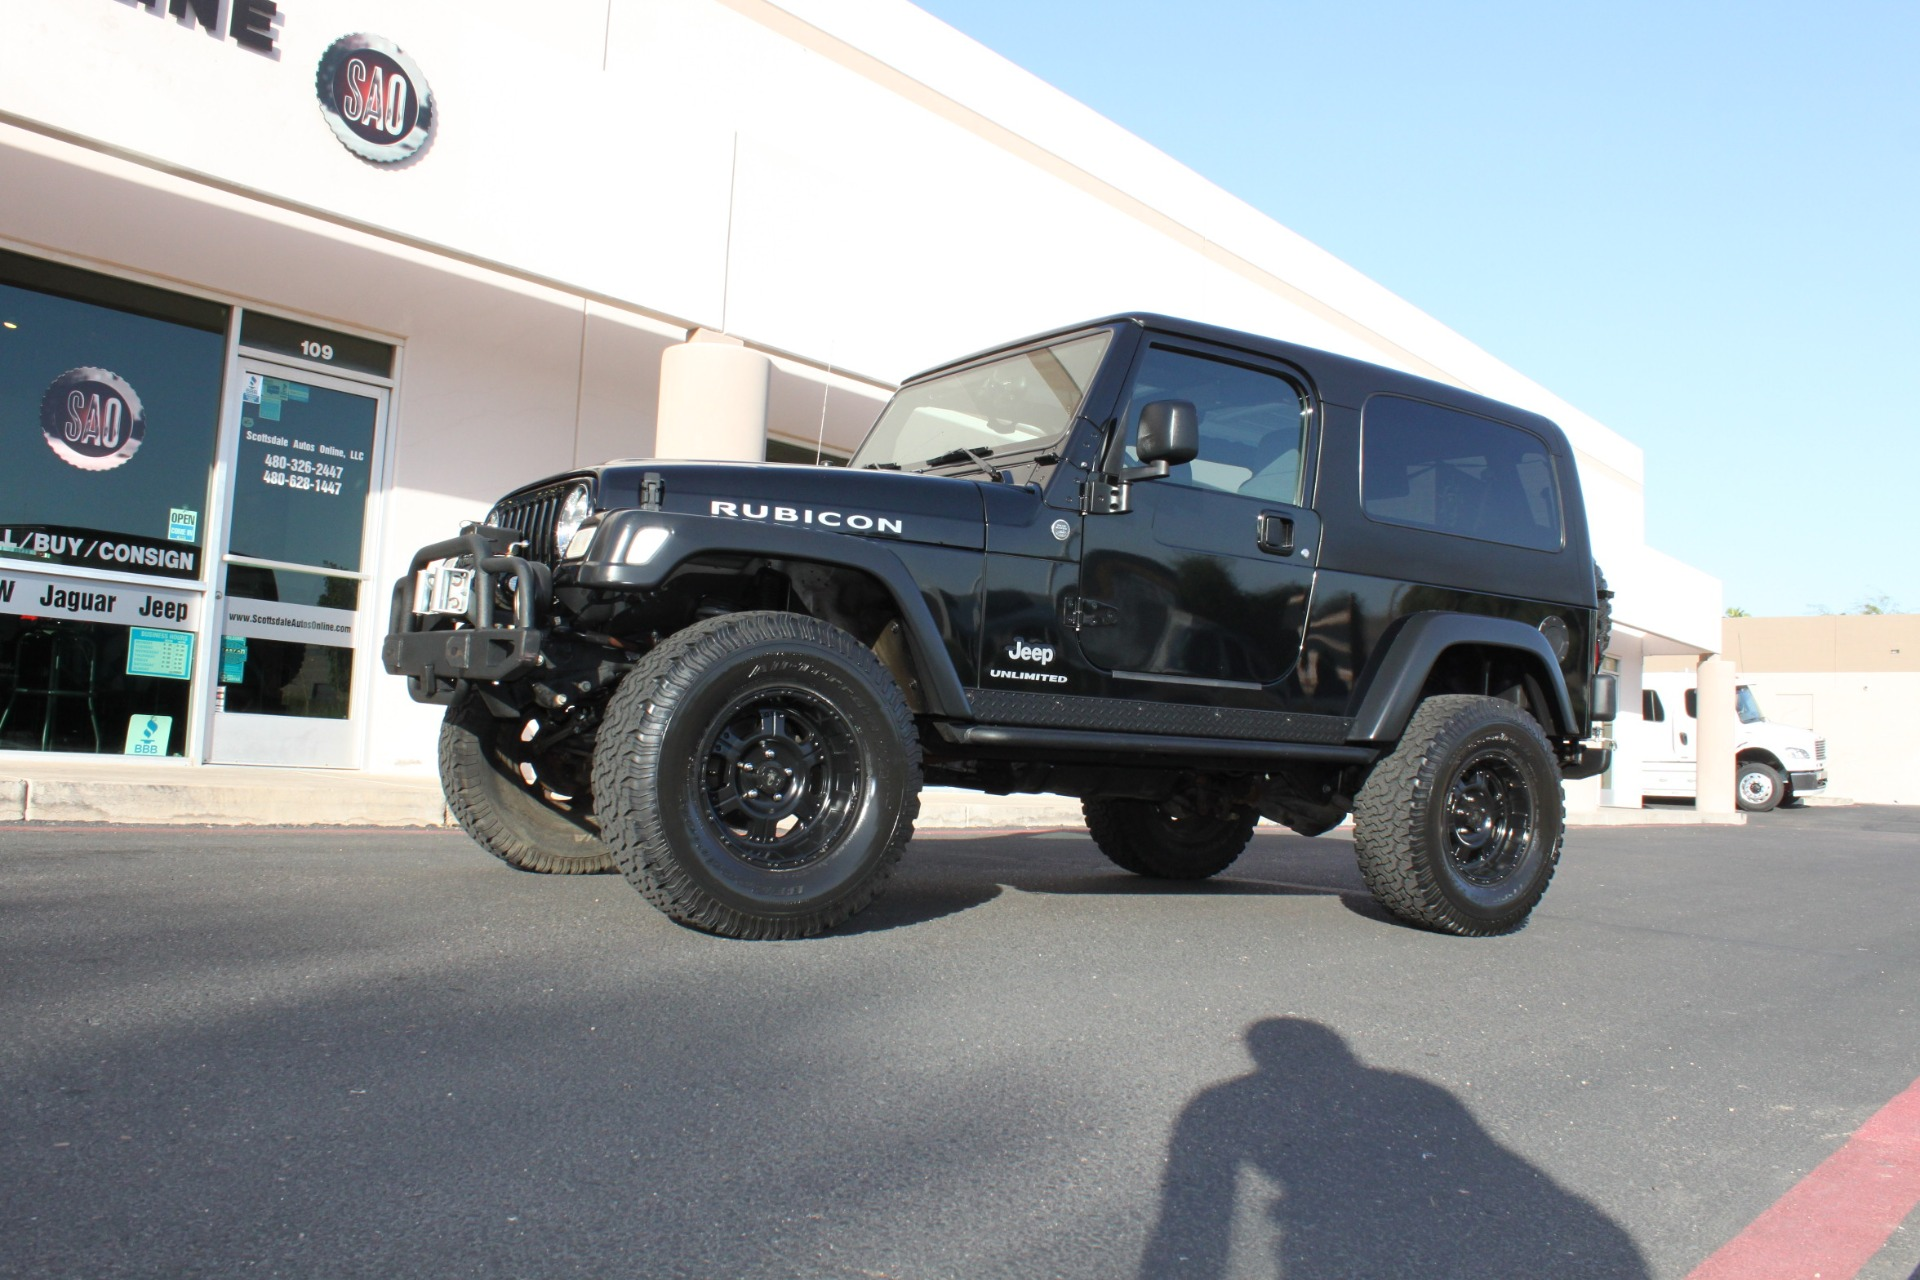 Used-2006-Jeep-Wrangler-Unlimited-Rubicon-LWB-Chevrolet